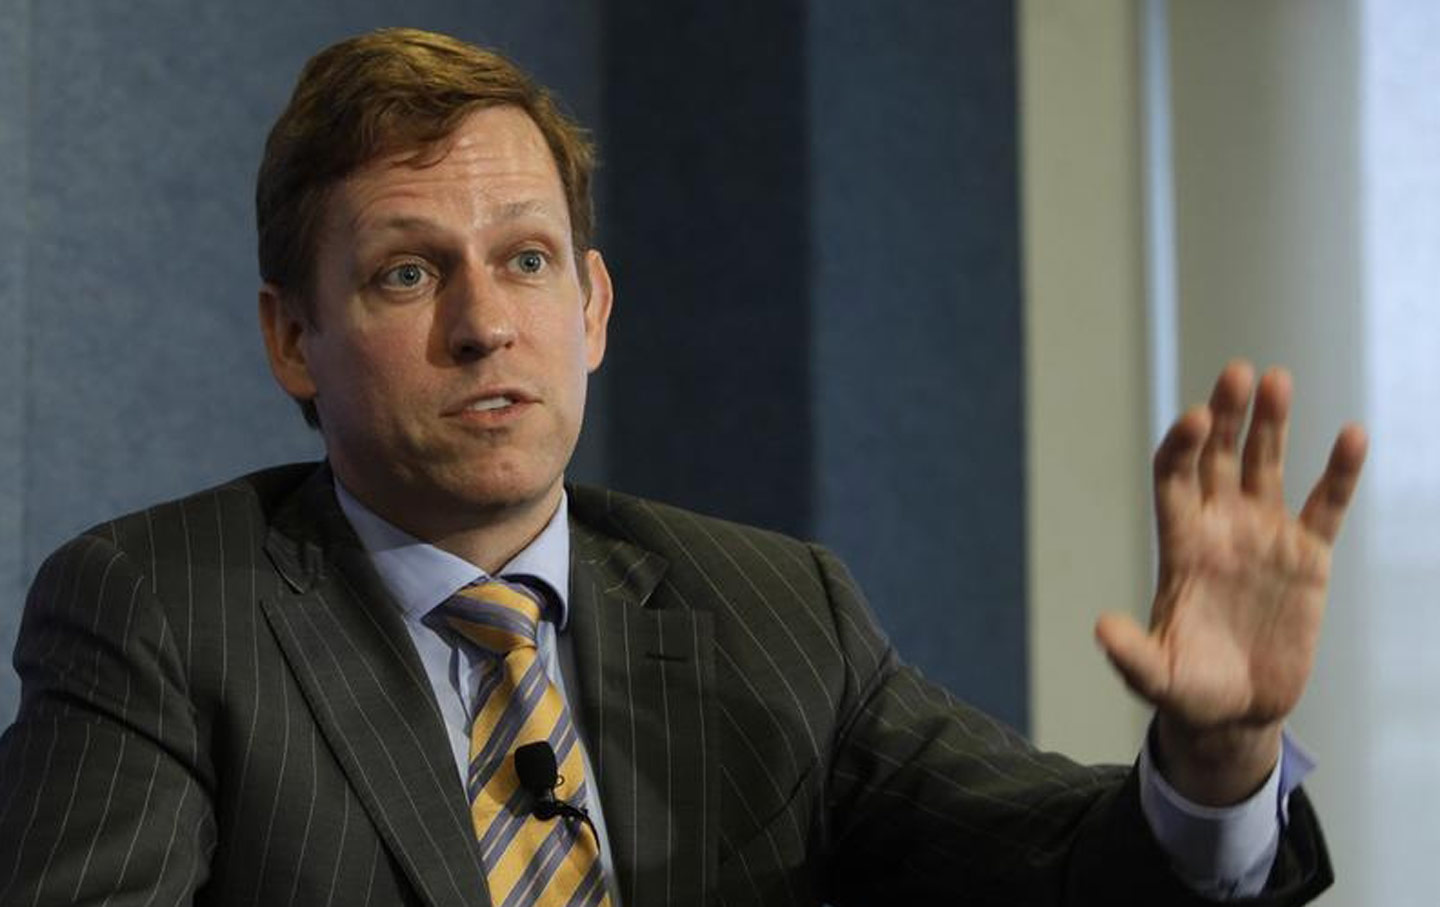 Peter Thiel Net Worth